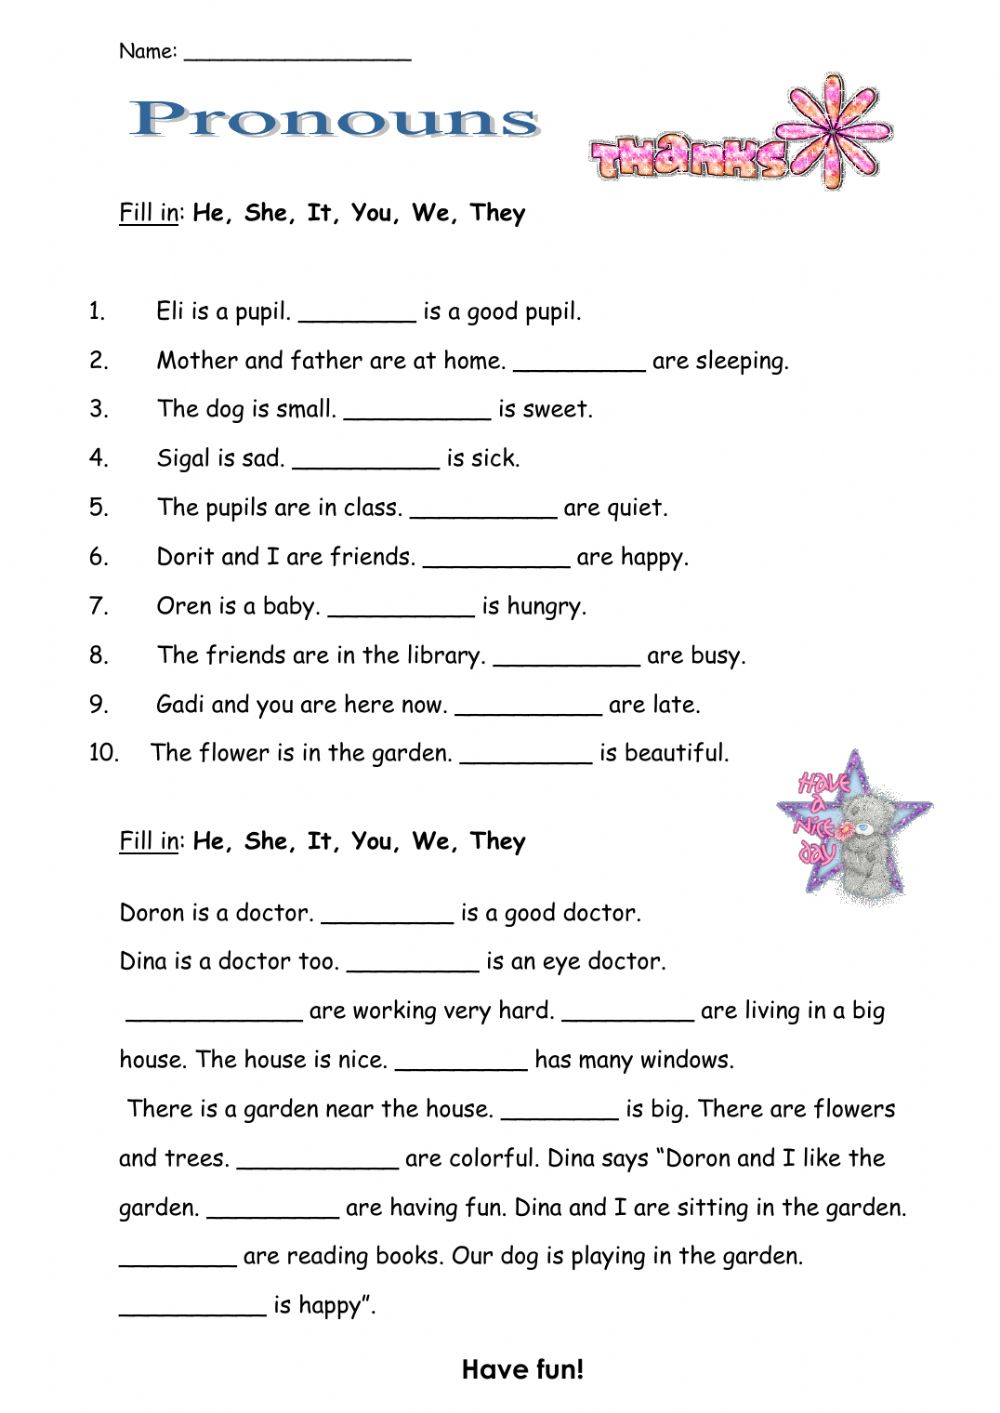 hight resolution of Pronouns activity for 5th grade